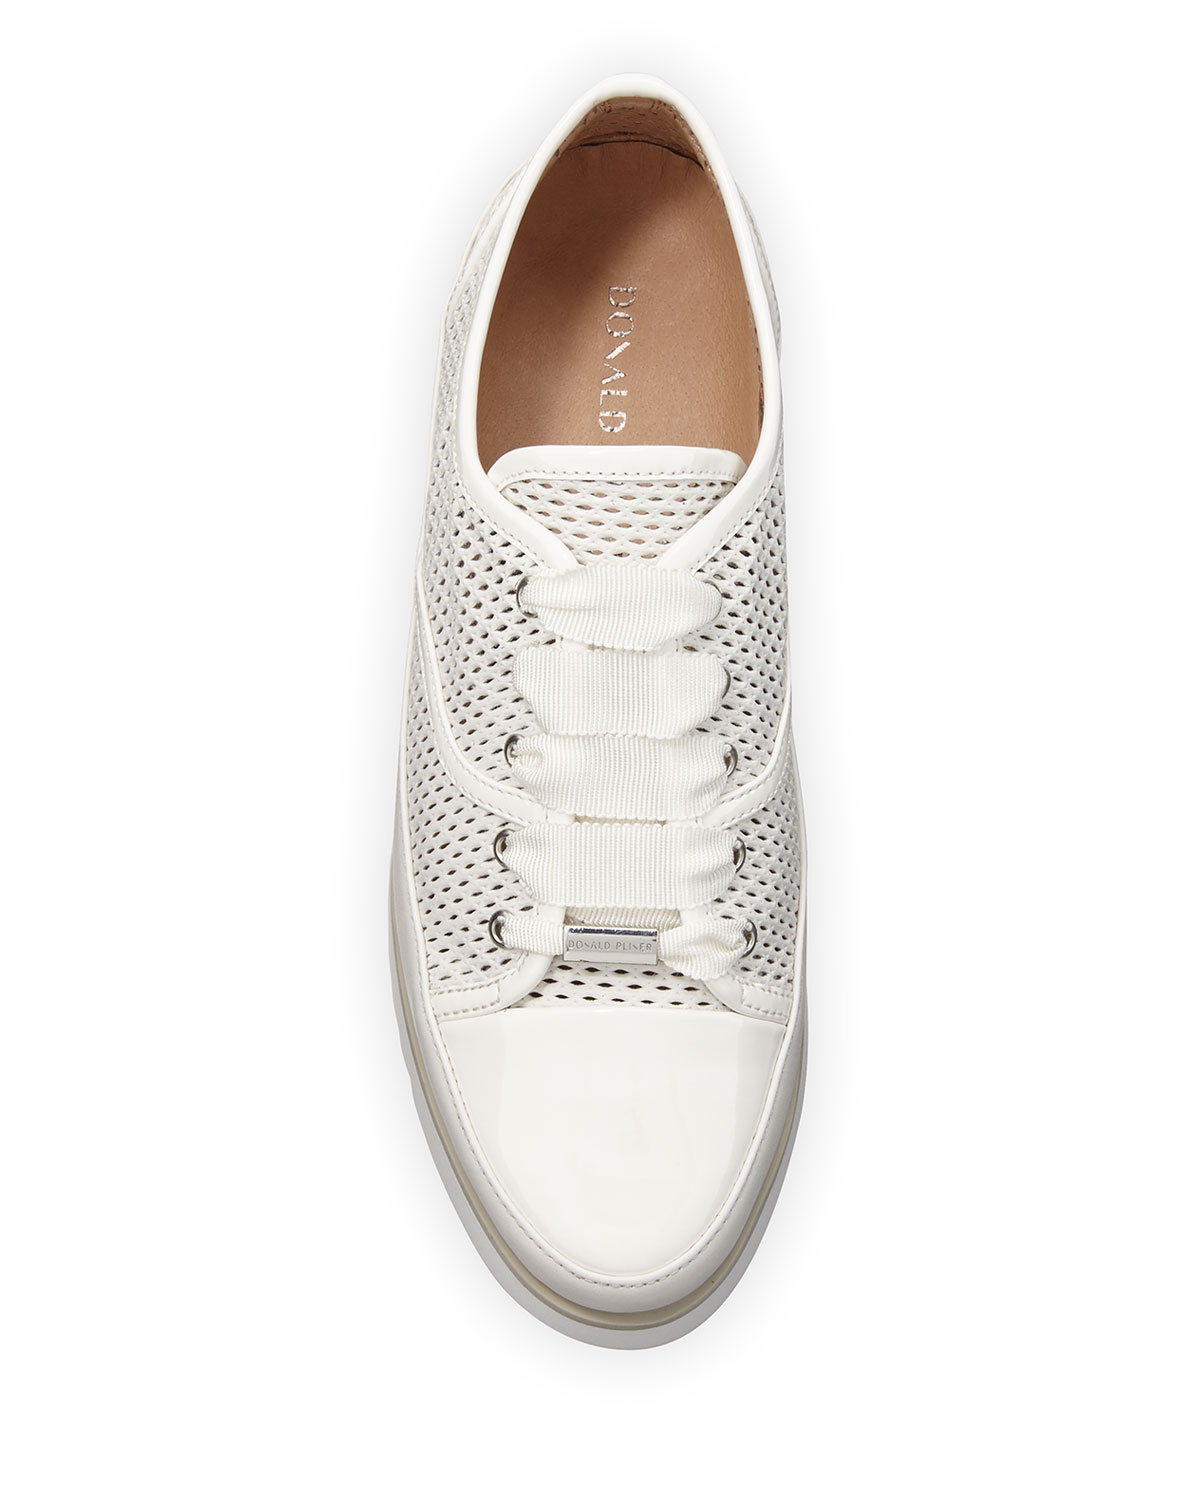 Flipp Perforated Leather Sneakers by Donald J Pliner